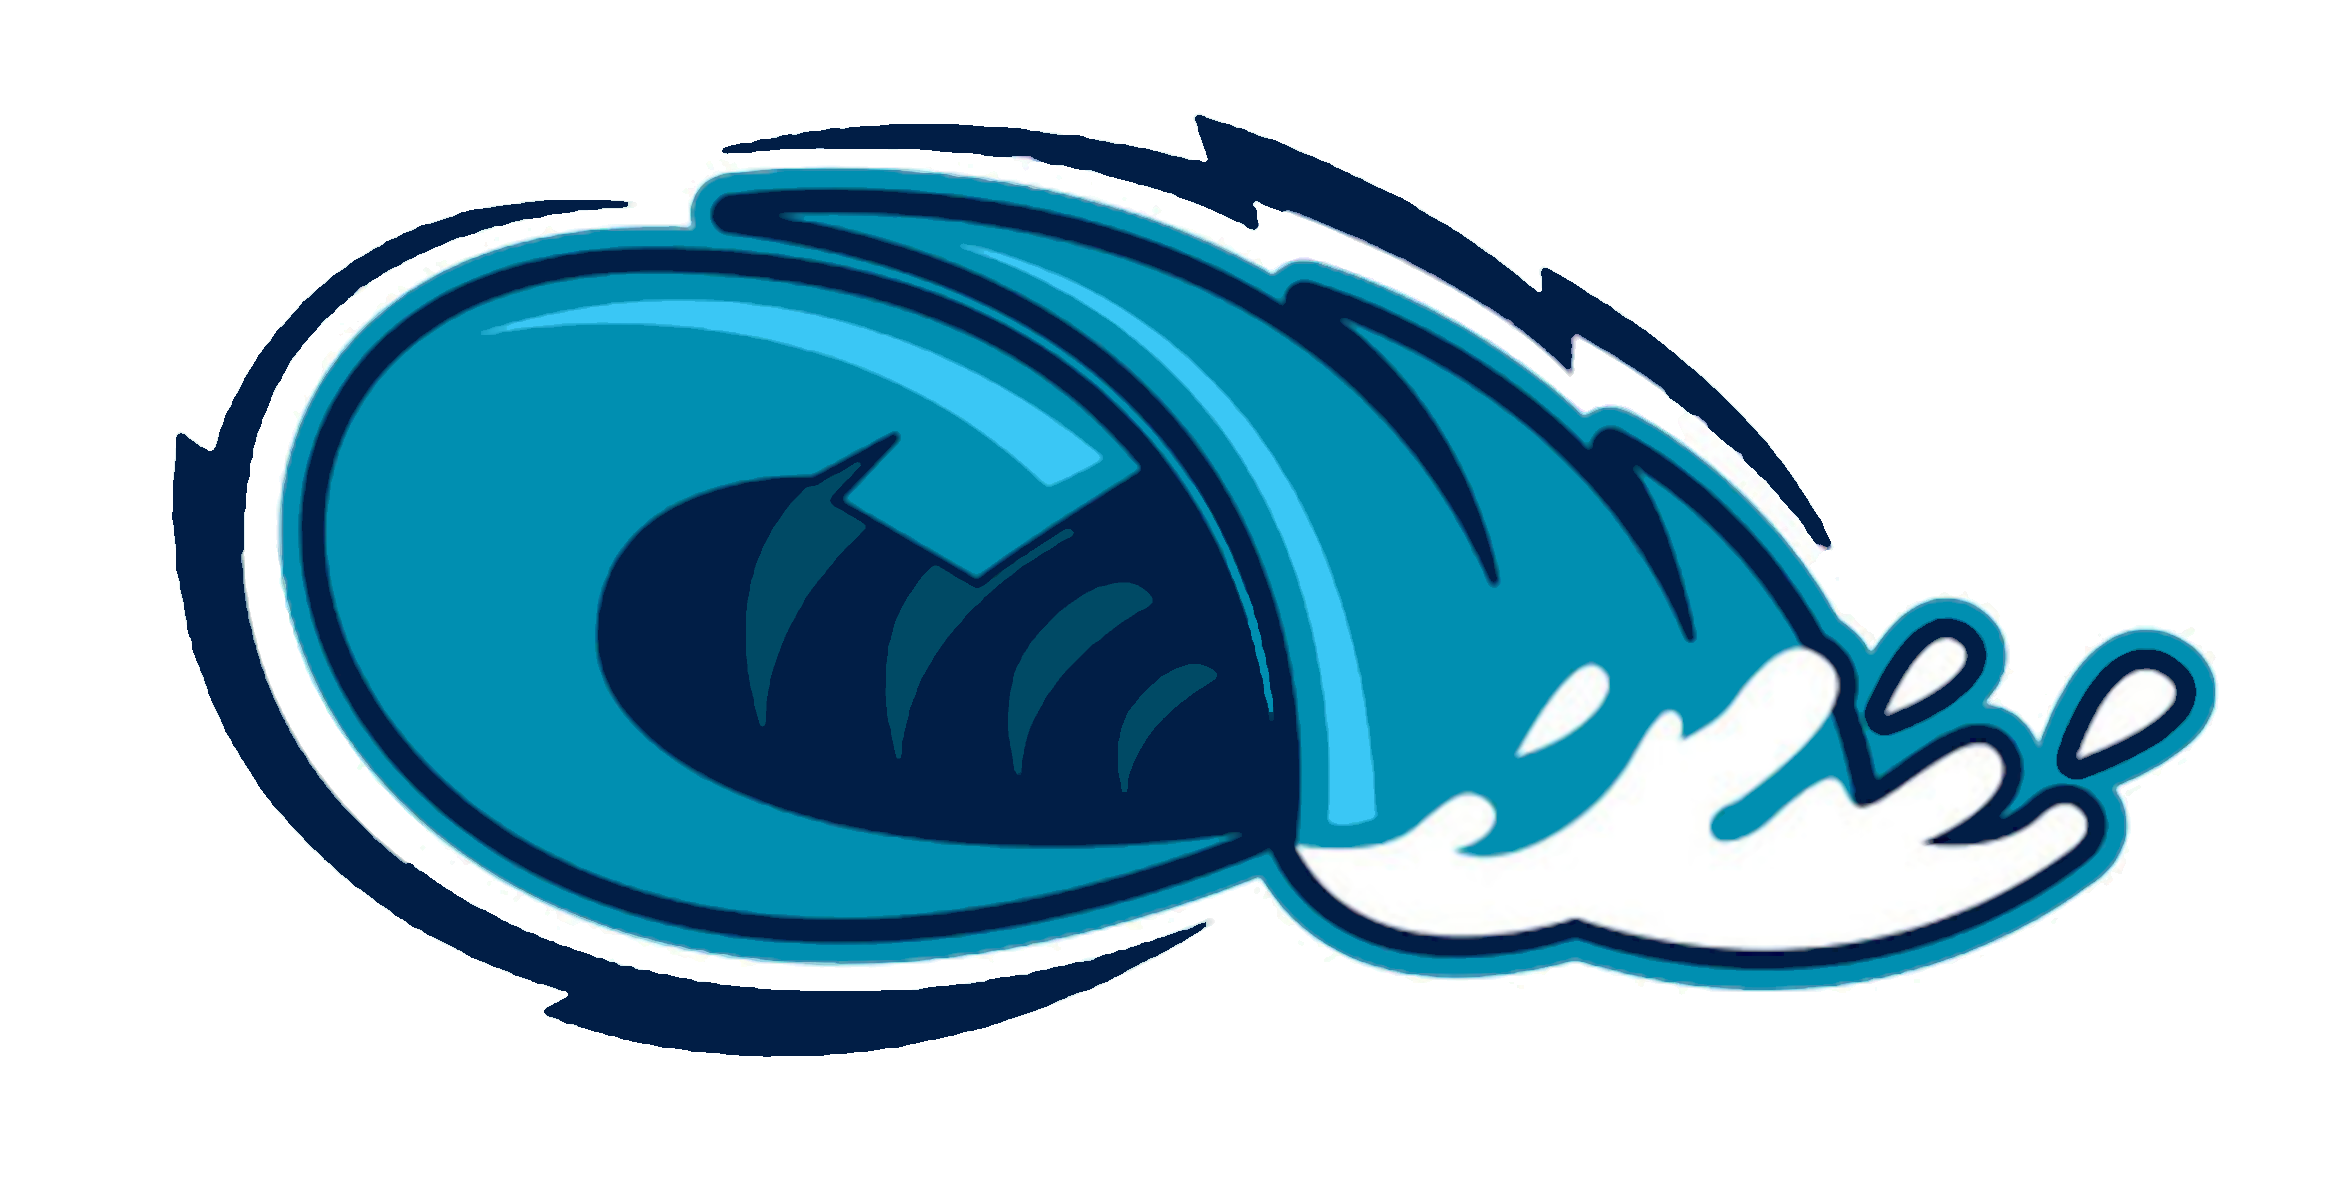 Waves clipart comic. Monster tide pencil and